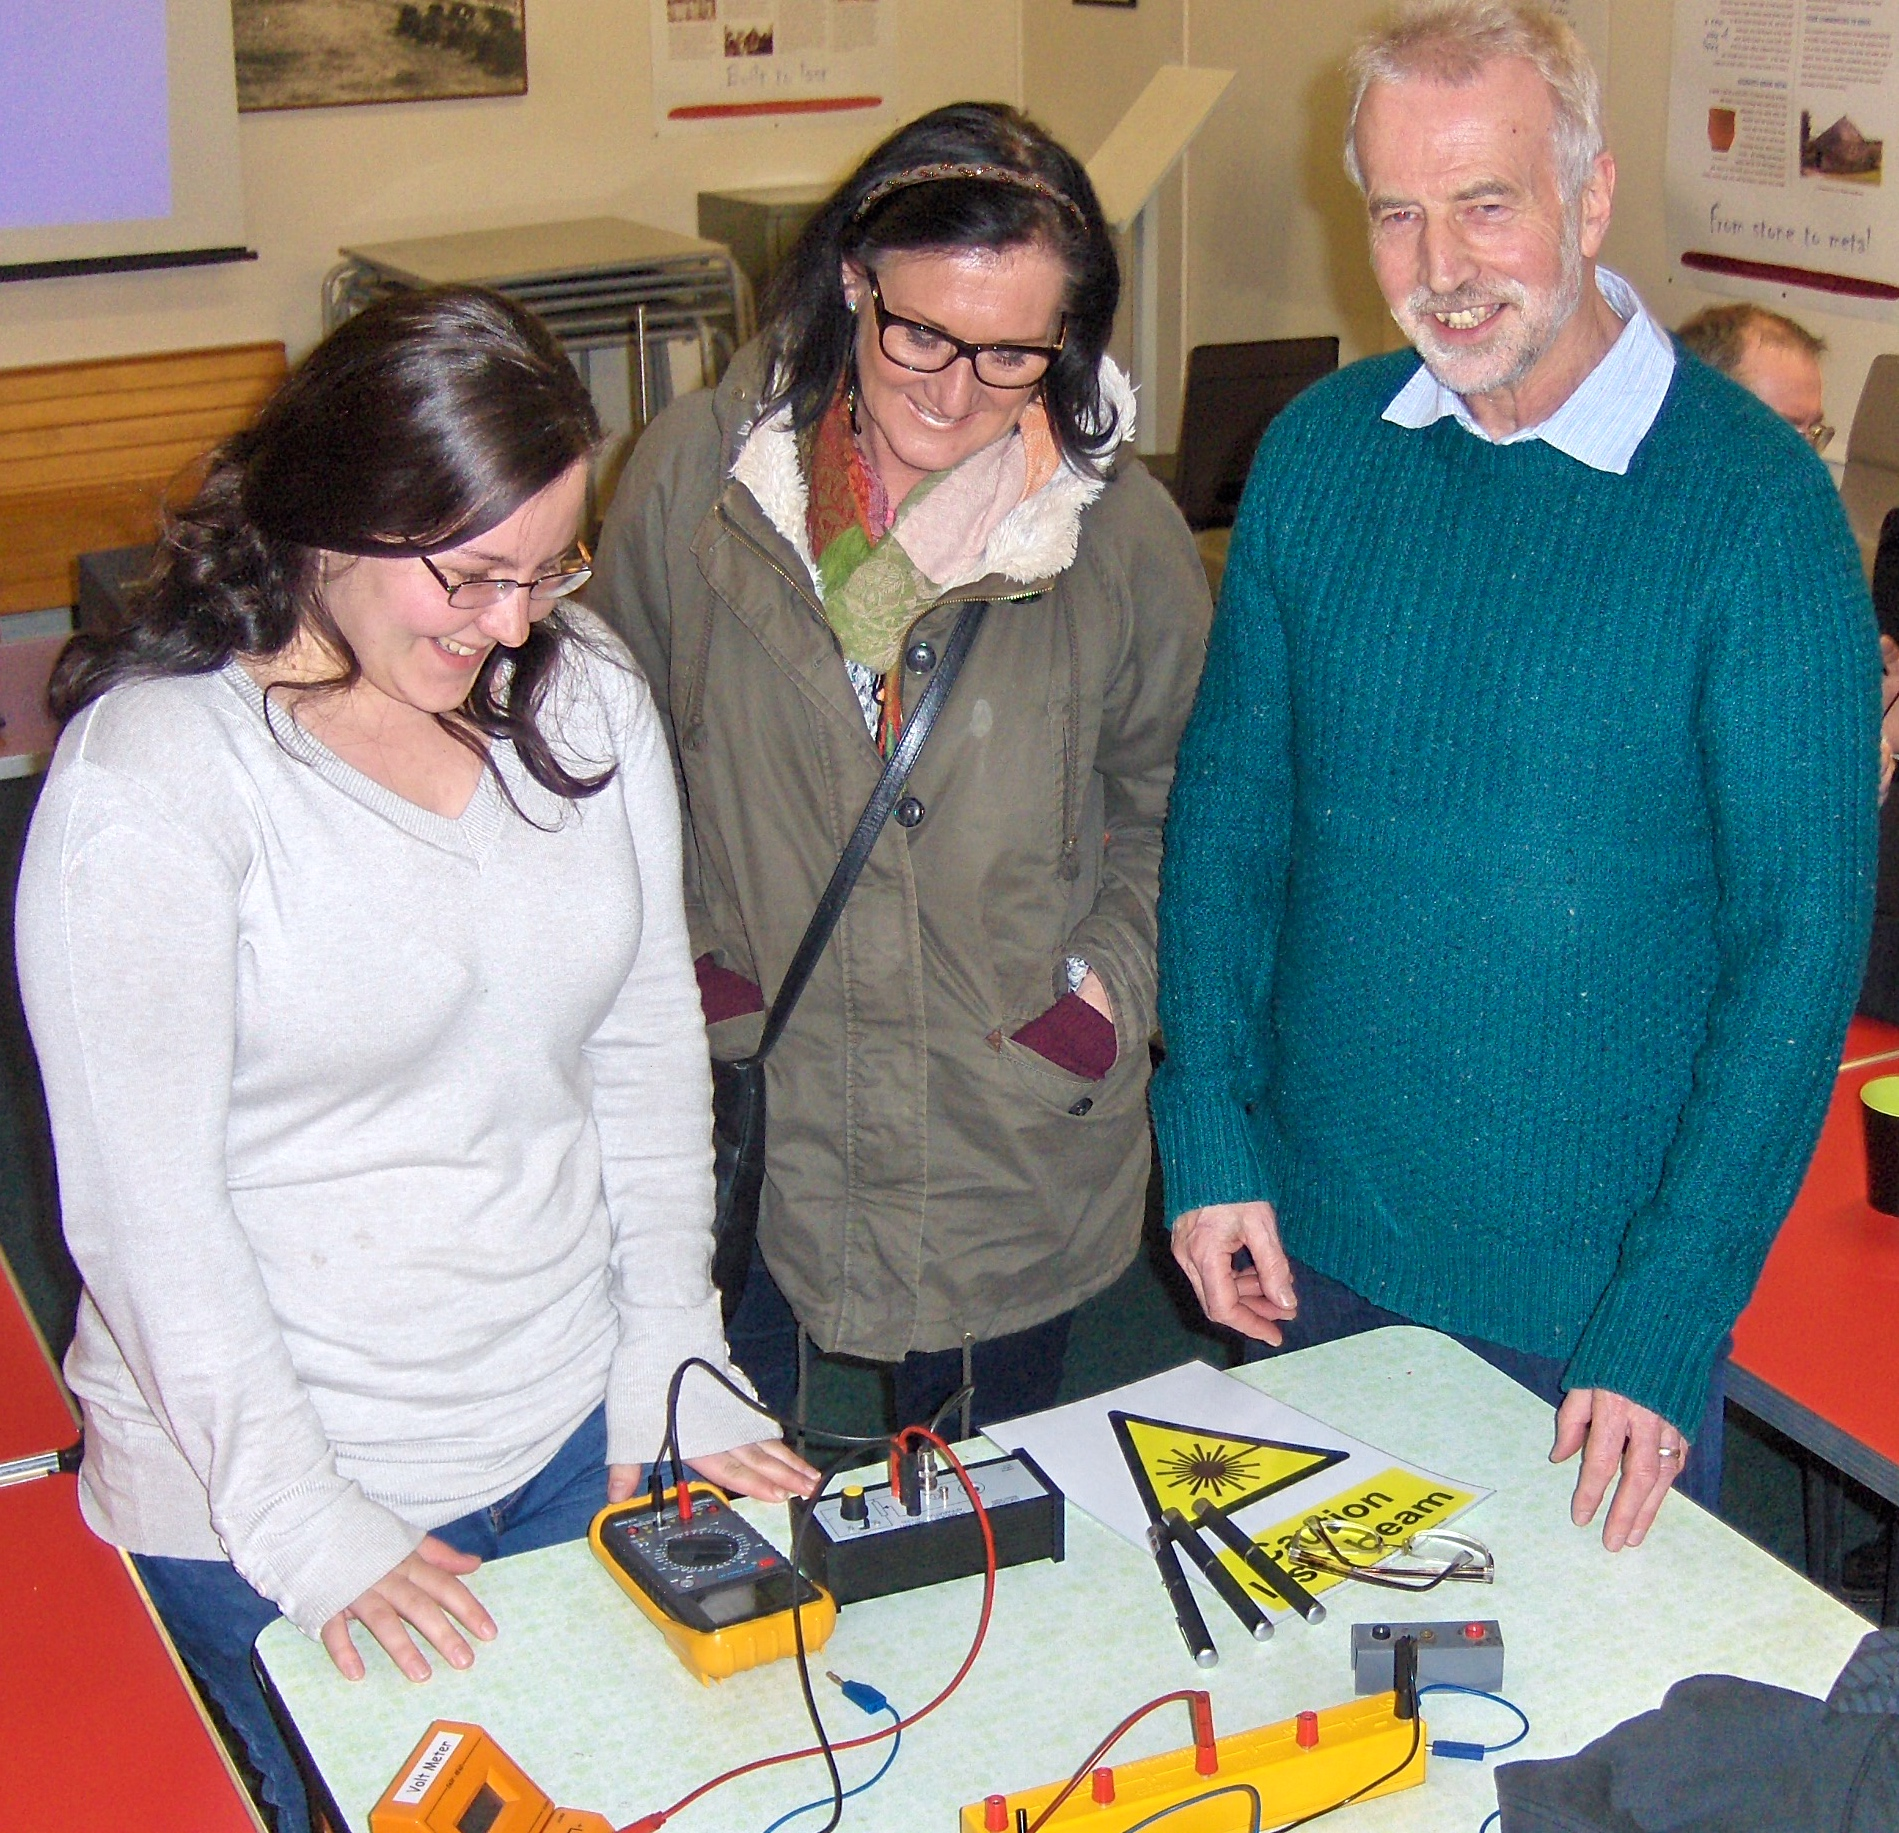 Kaz, Lyne and John looking at the photoelectric effect